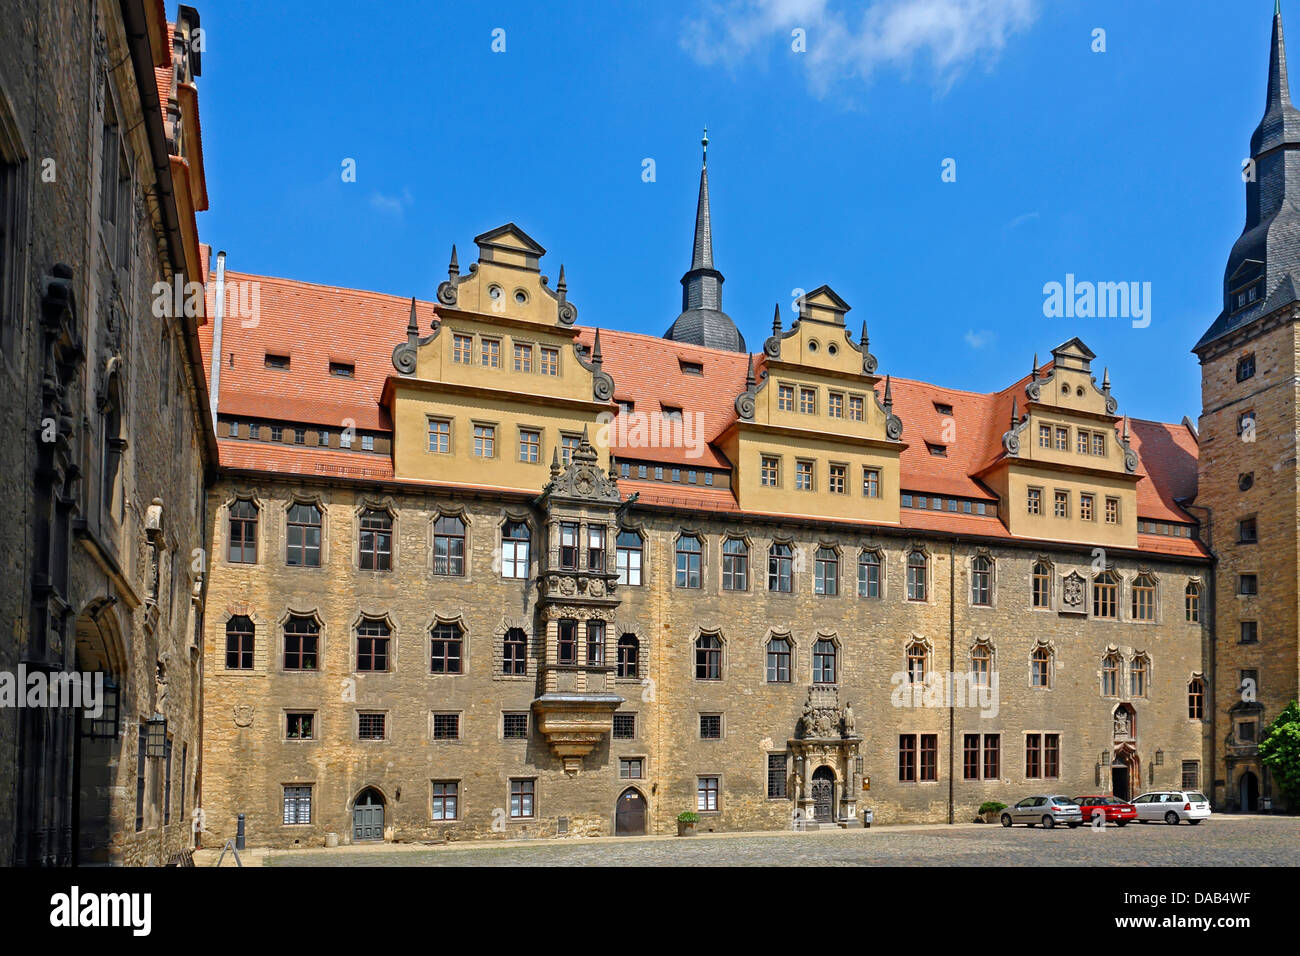 Europe, Germany, Saxony-Anhalt, Merseburg, cathedral place, castle, inner courtyard, architecture, vehicles, vessels, - Stock Image